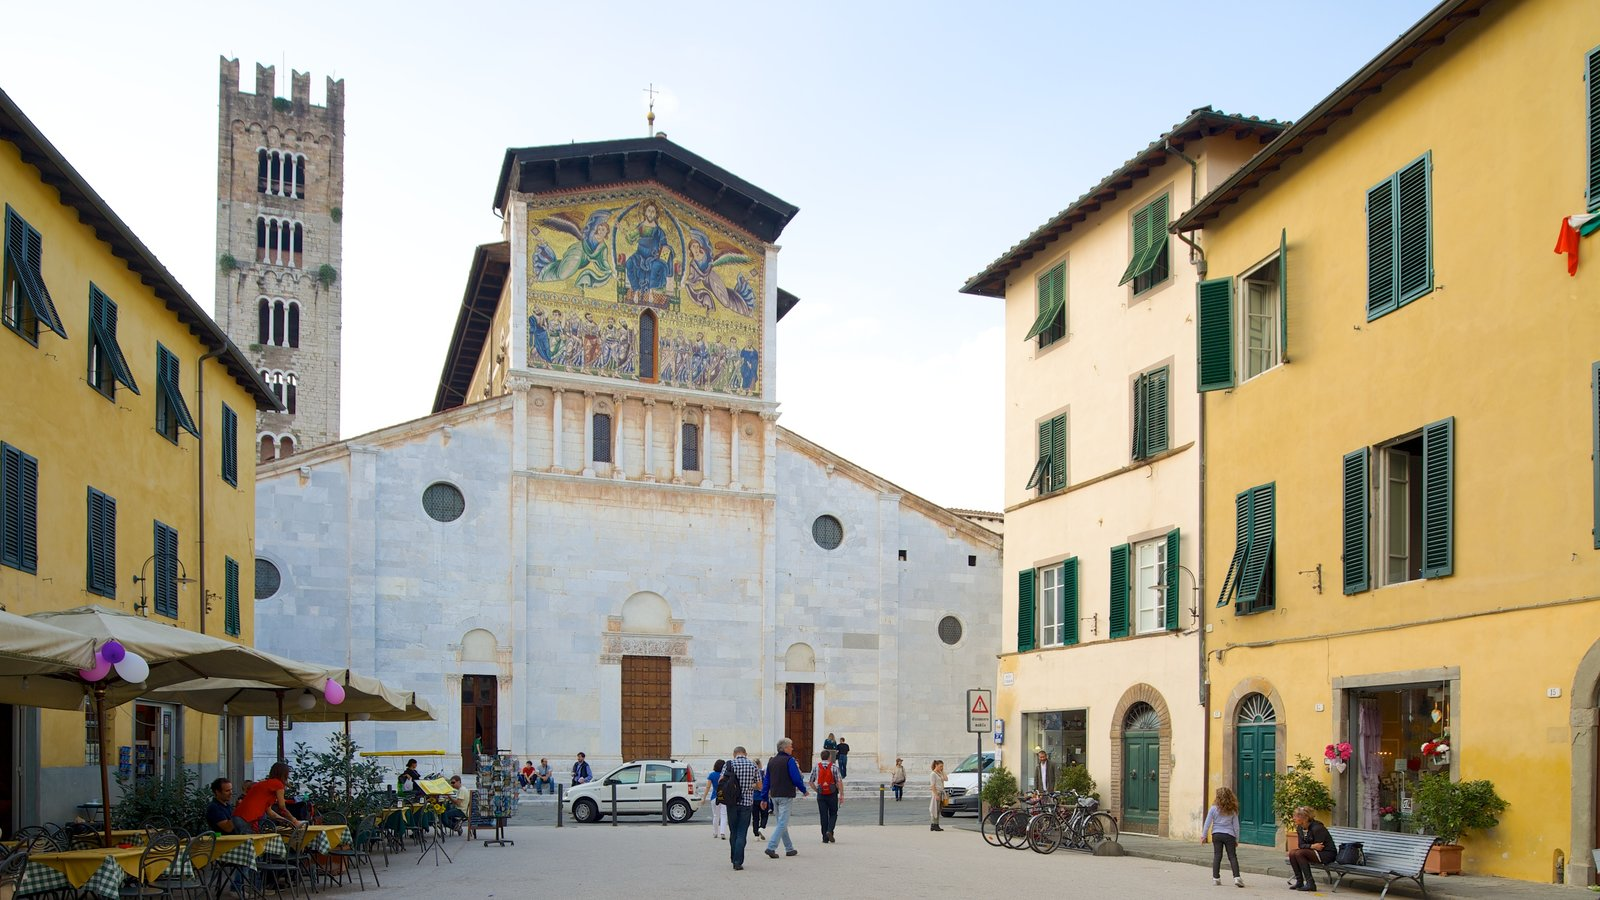 Basilica di San Frediano which includes street scenes, religious aspects and a church or cathedral